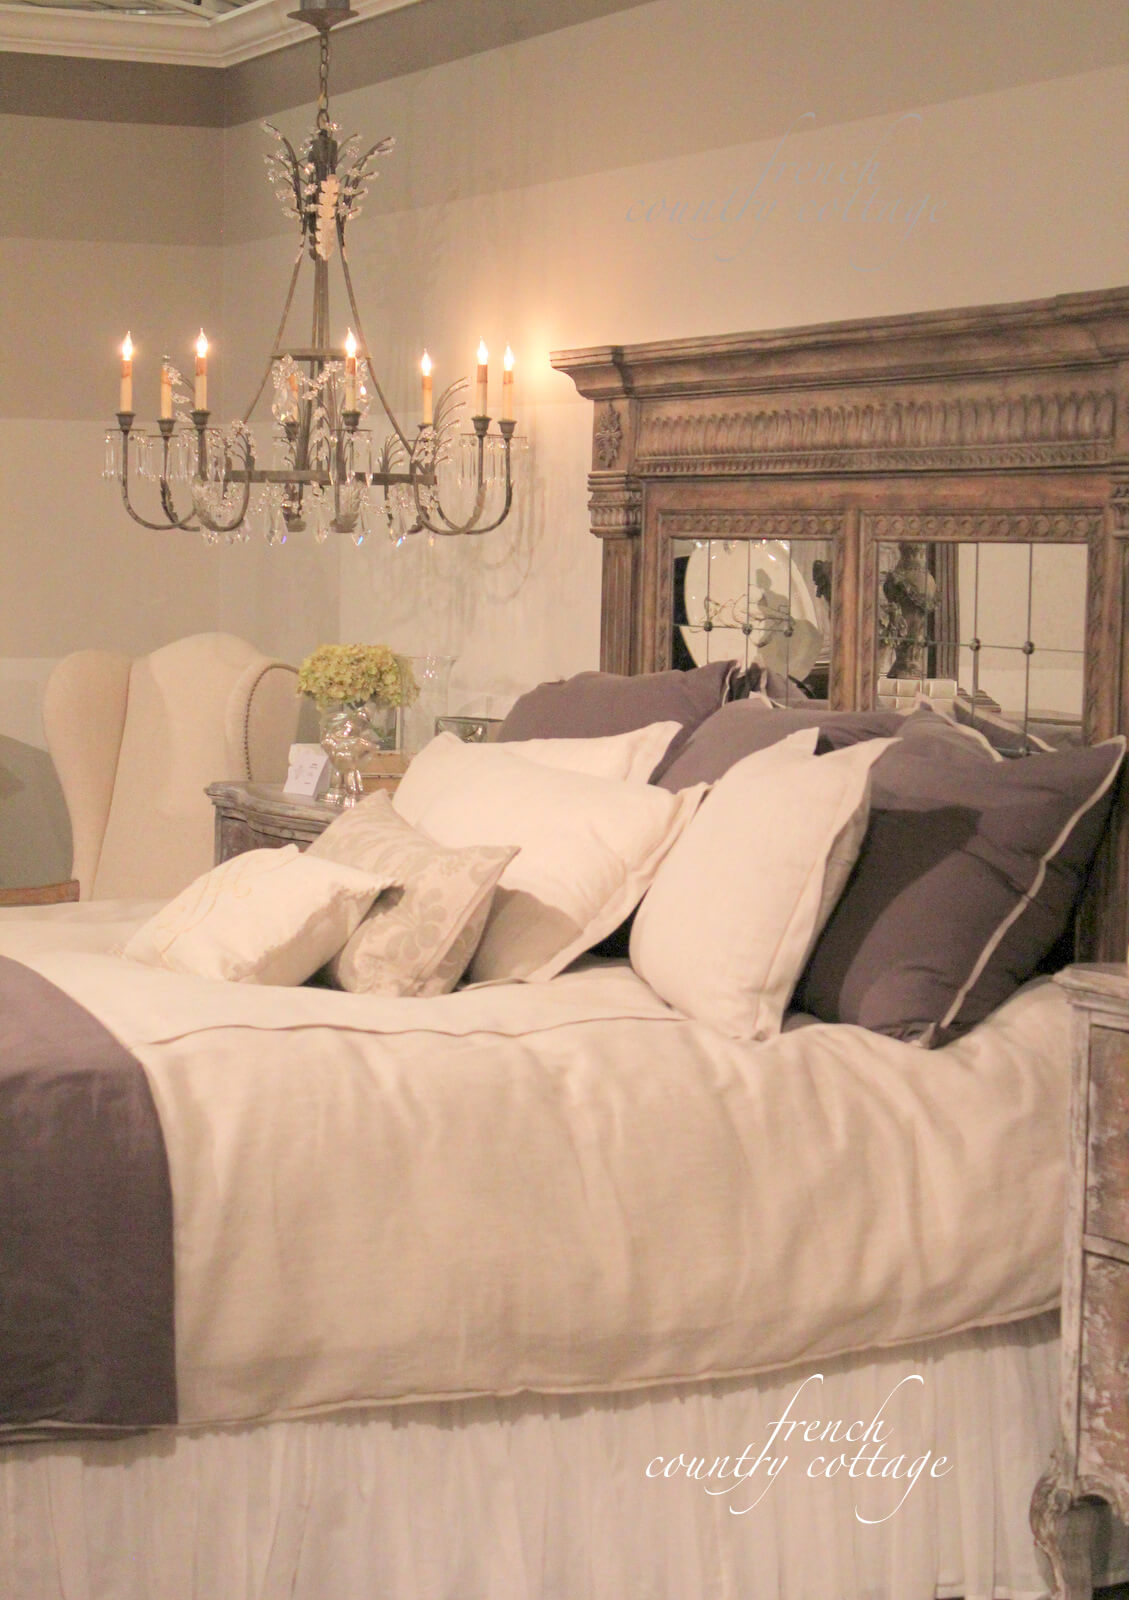 Luxurious Bed with Mirrored Headboard